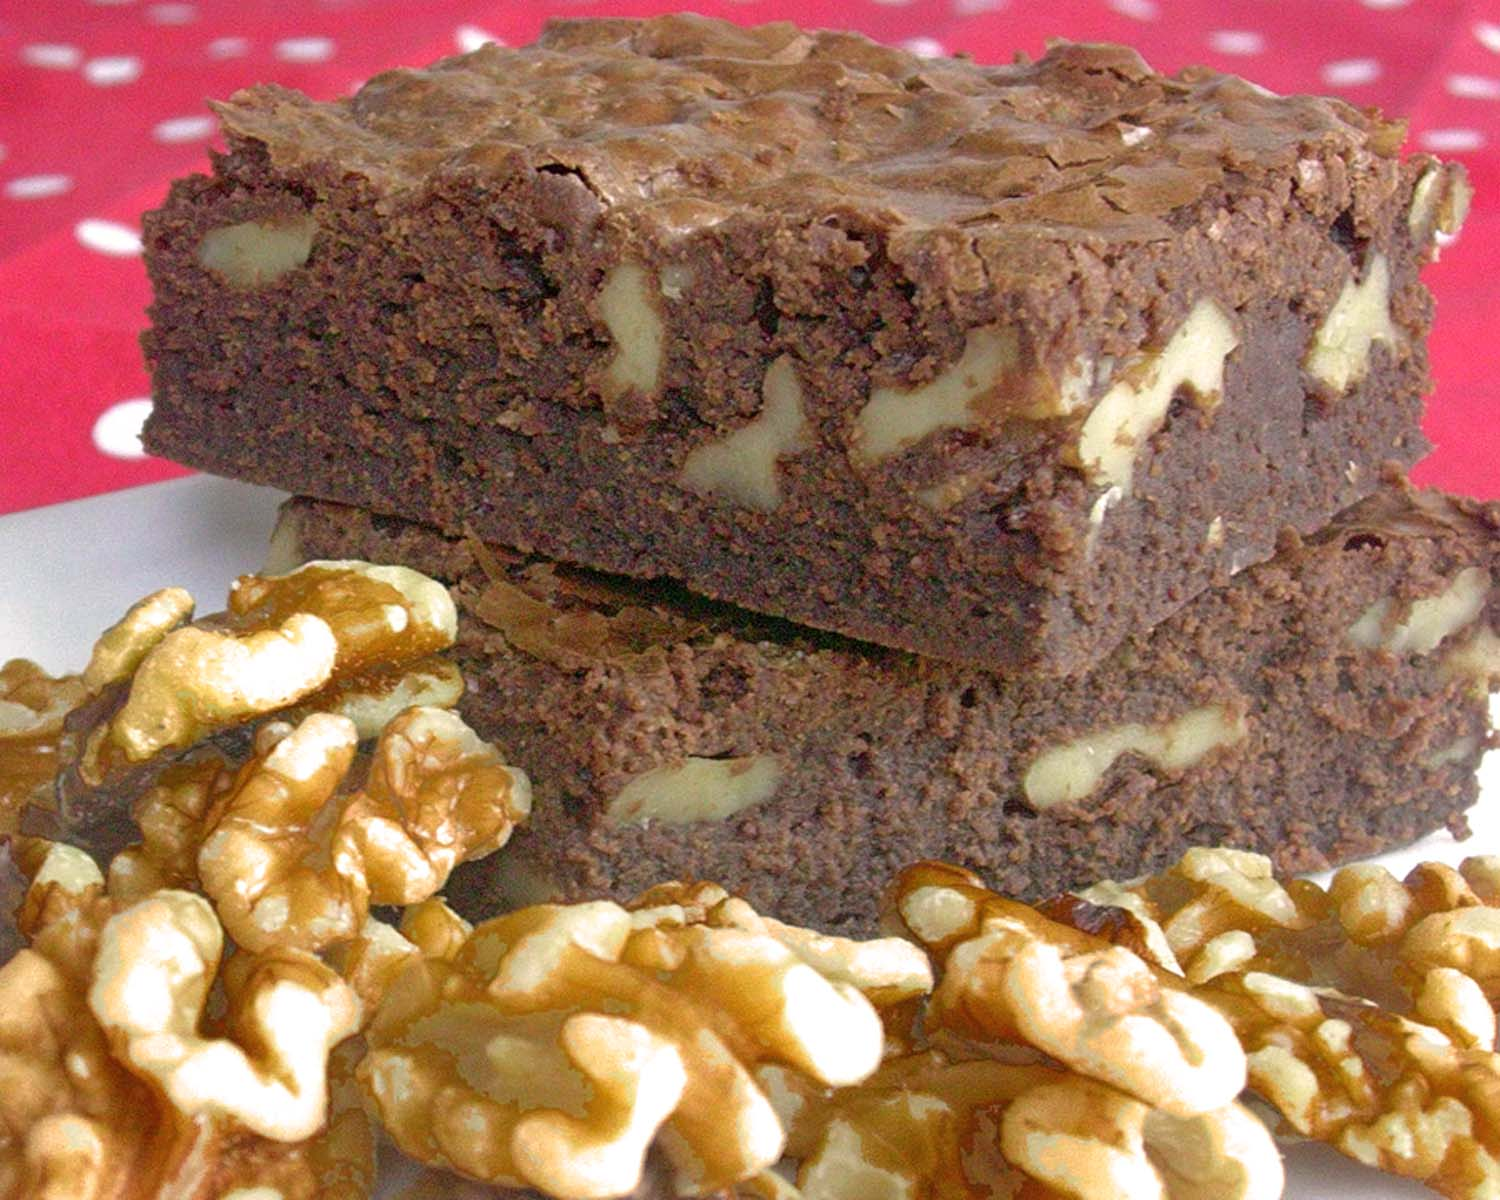 Brownies de chocolate con nueces